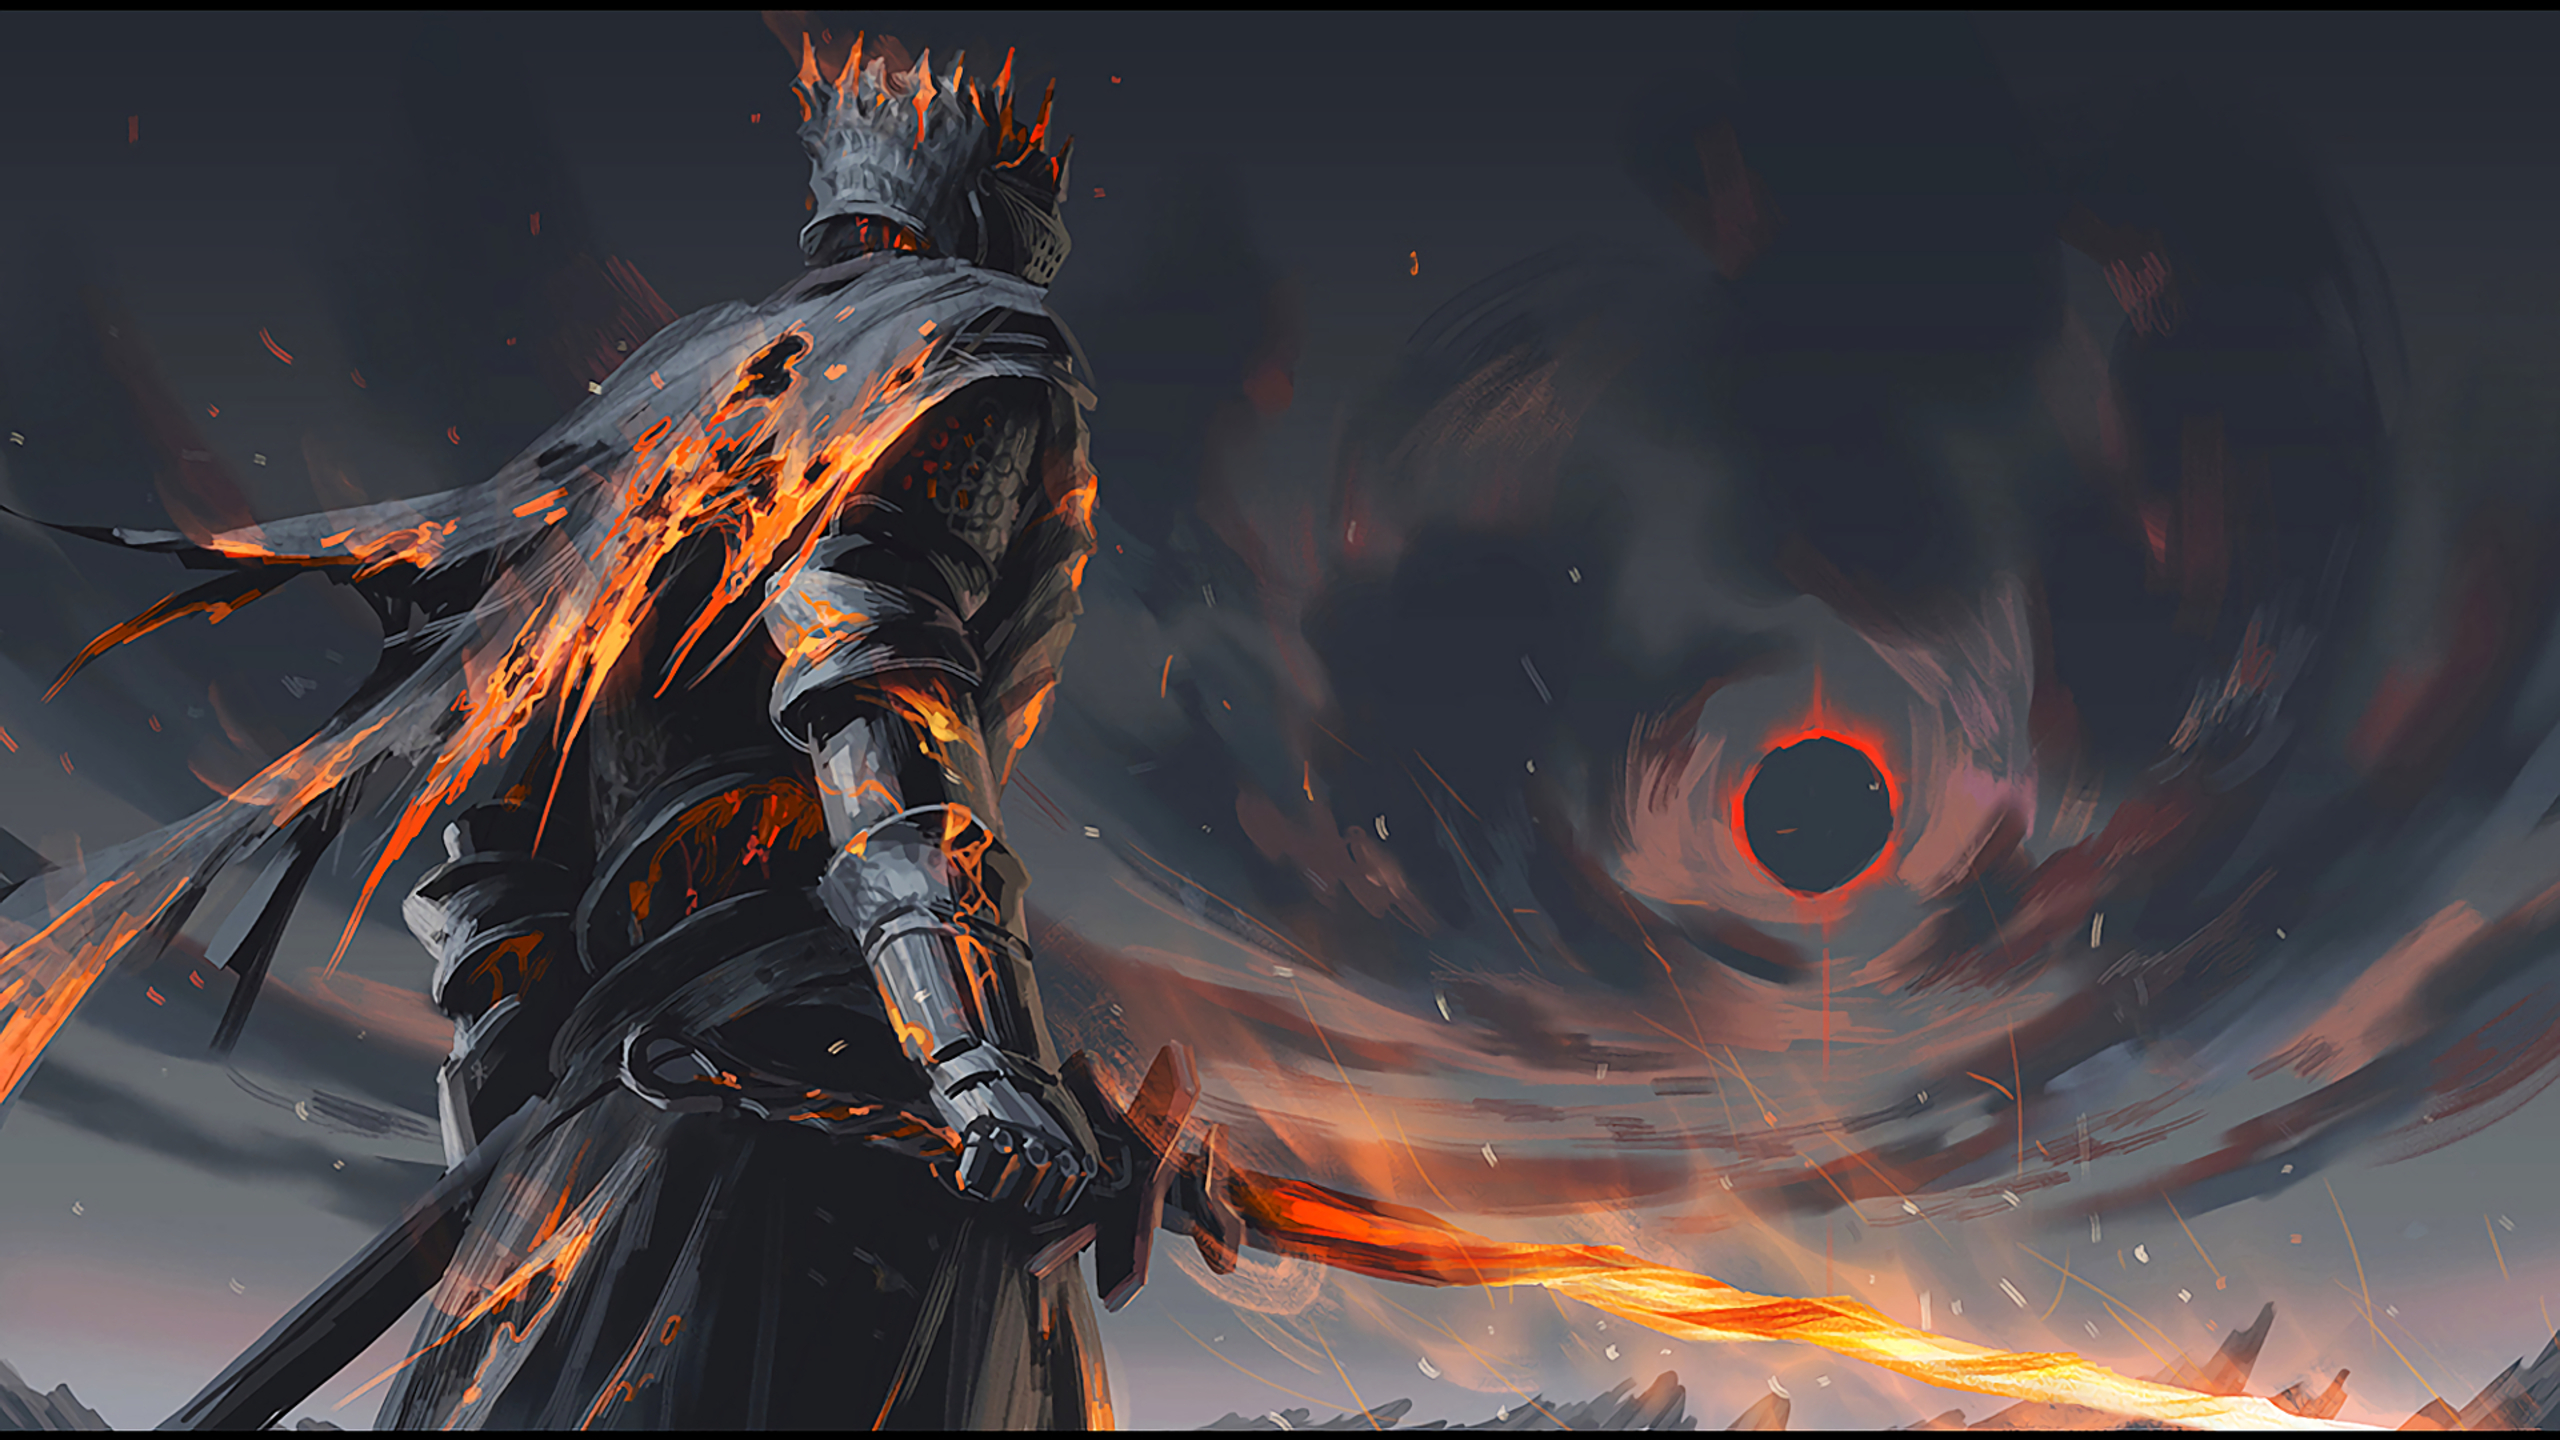 Dark Souls 3 Artwork 1440P Resolution